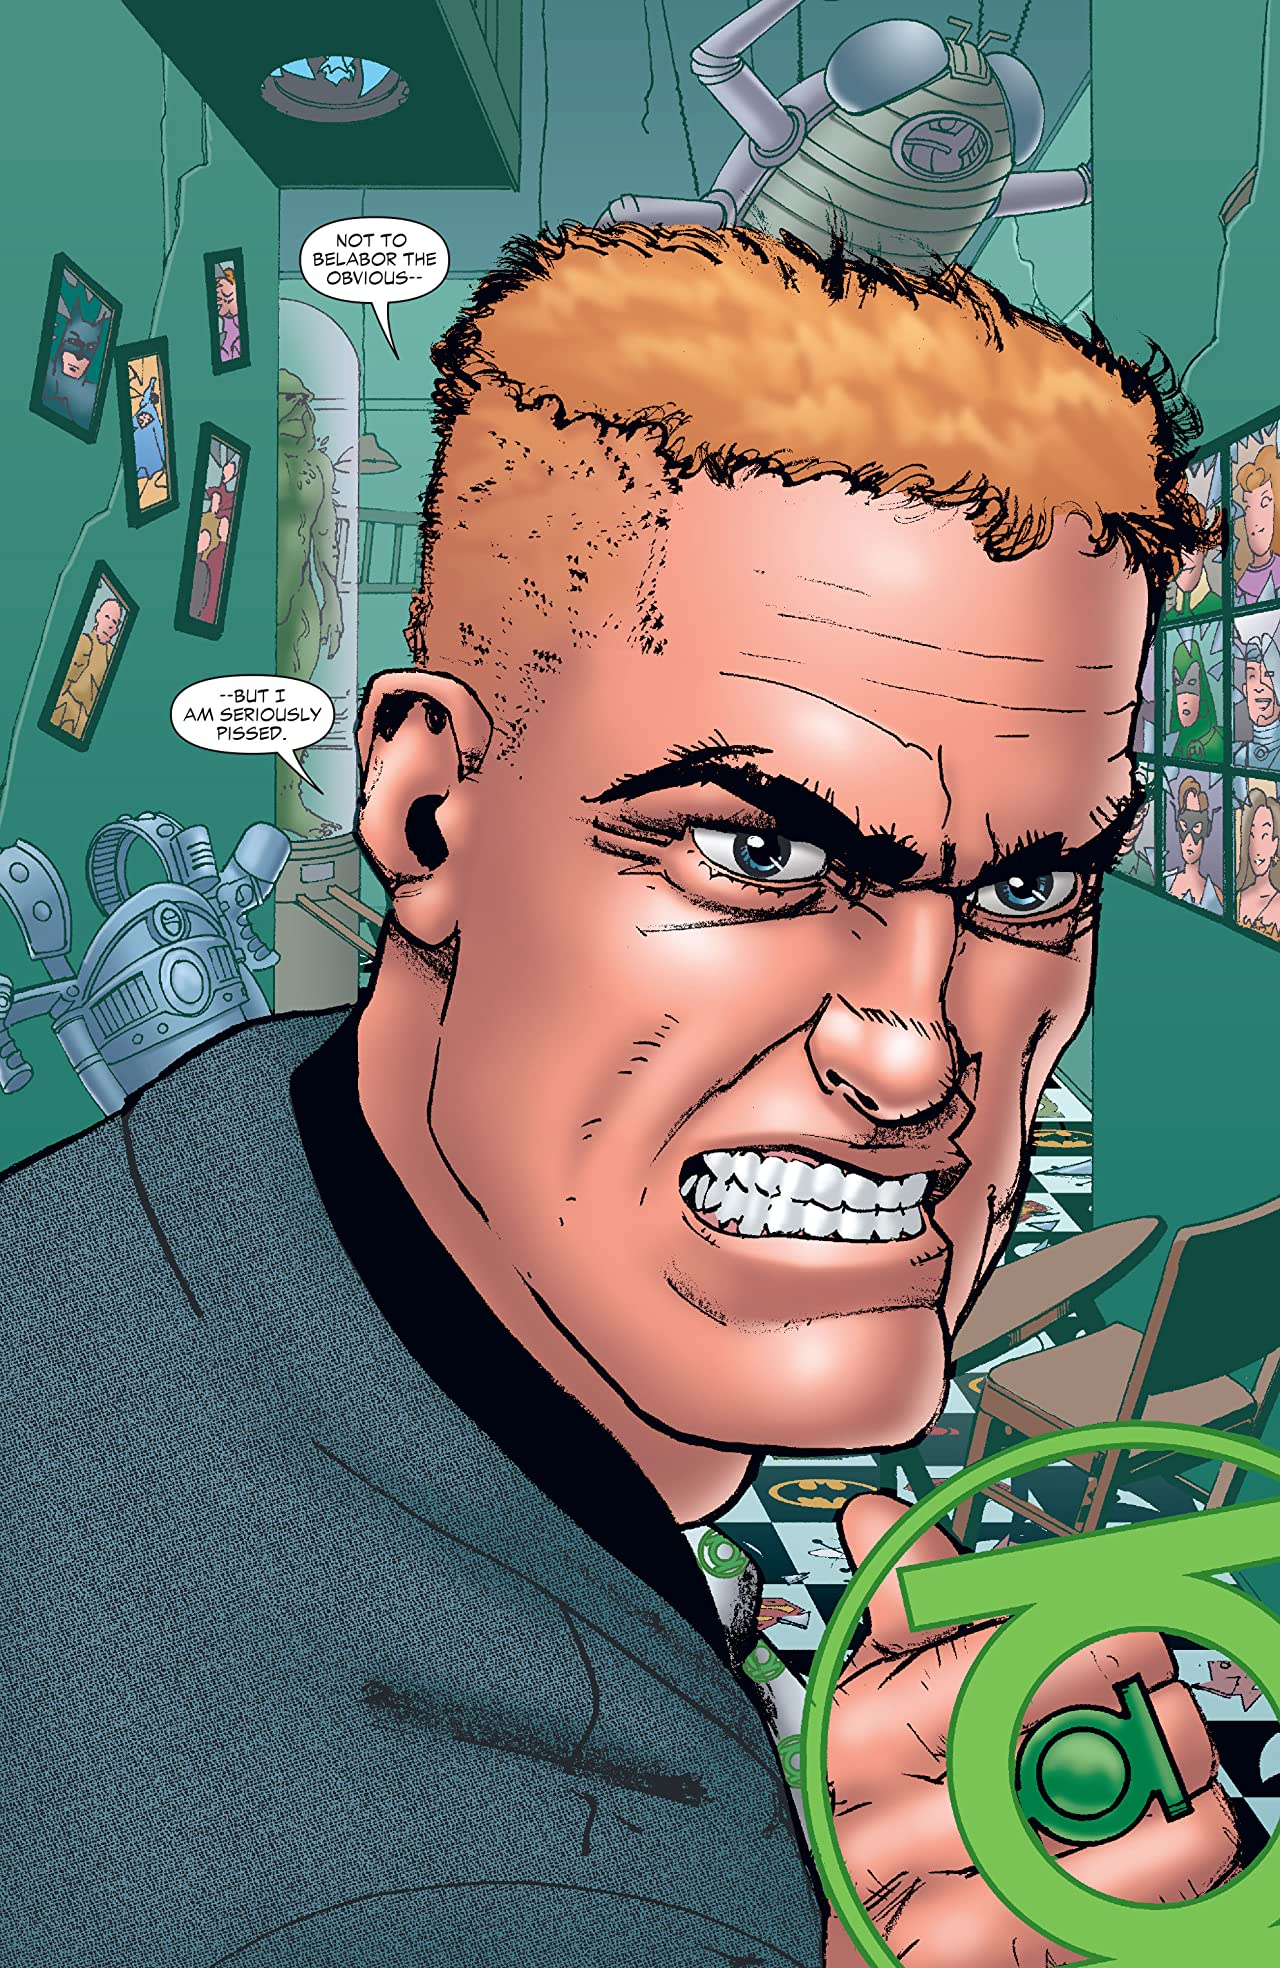 Guy Gardner: Collateral Damage (2006) #2